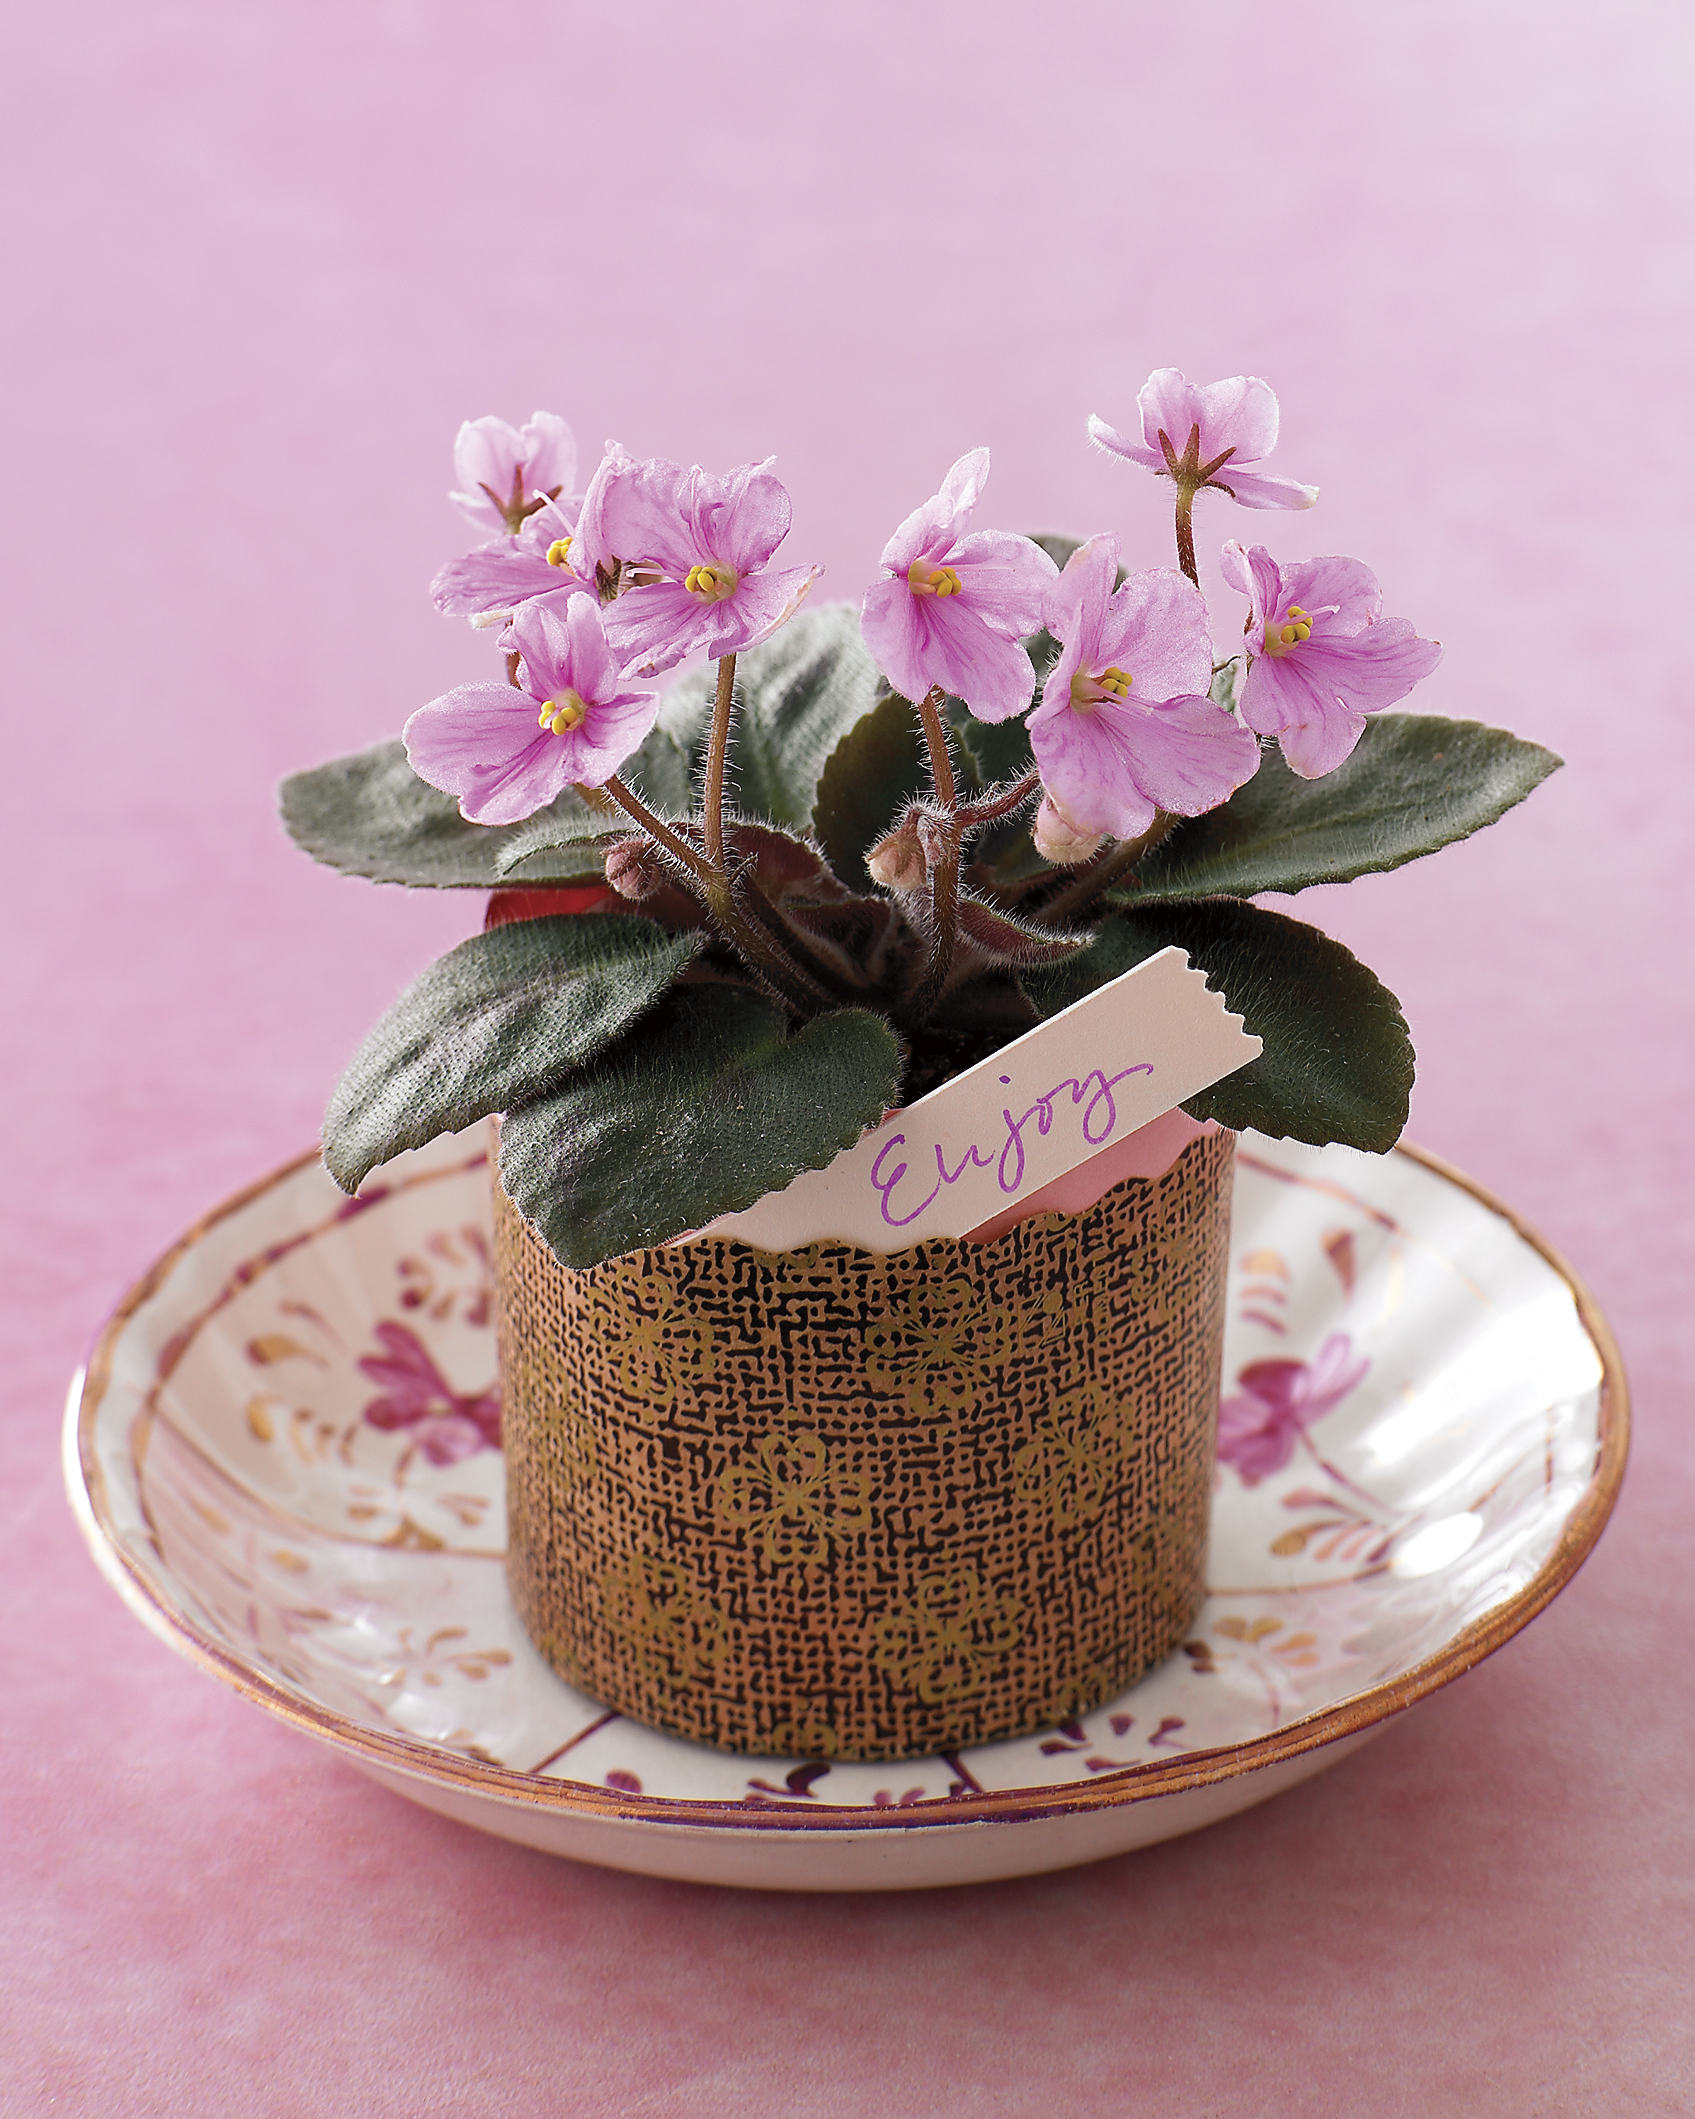 Potted African Violets